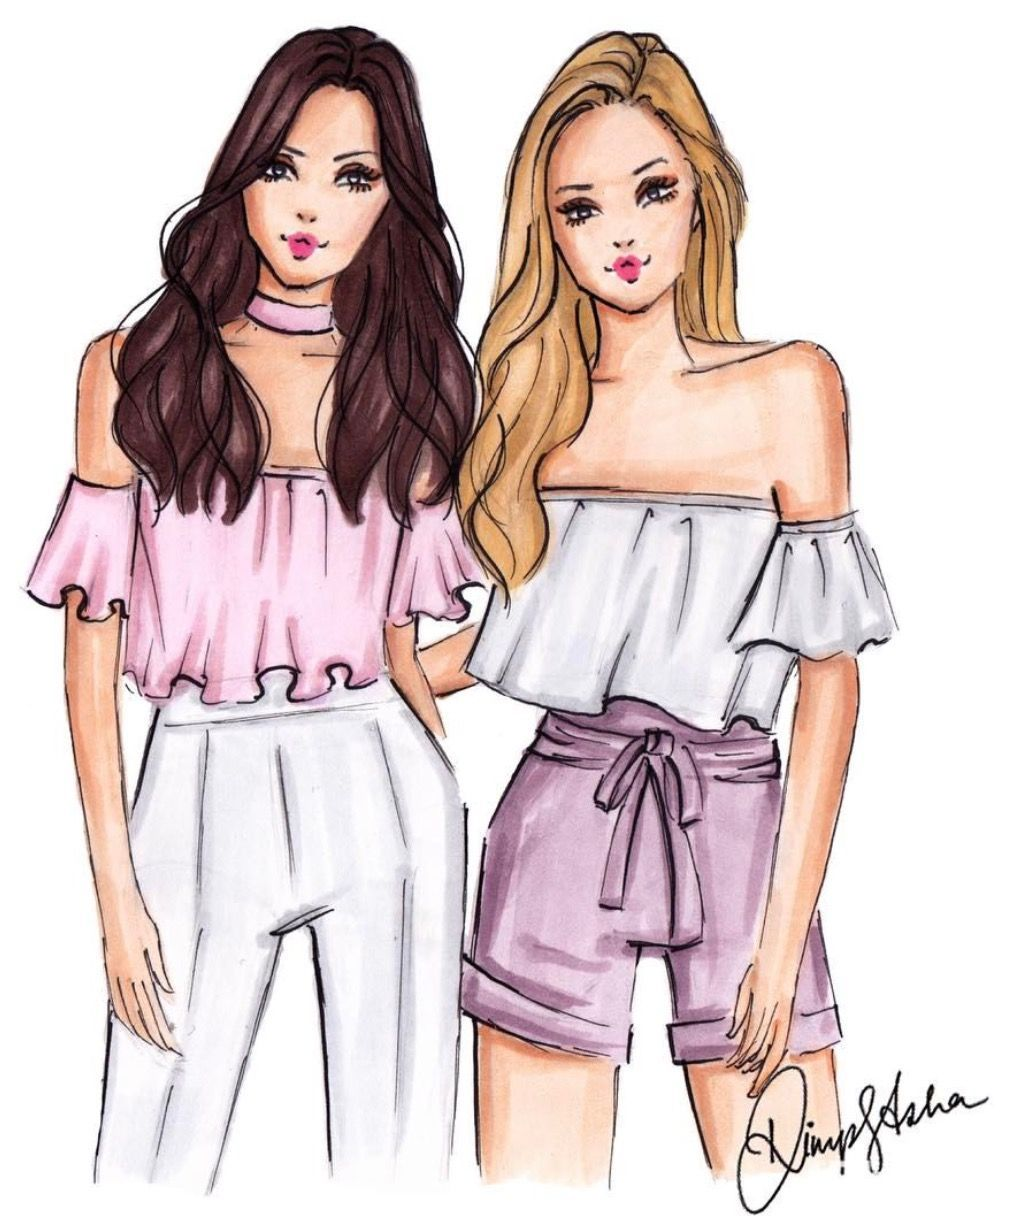 cute bff drawings - - Image Search Results | Bff drawings, Best friend drawings, Drawings of friends